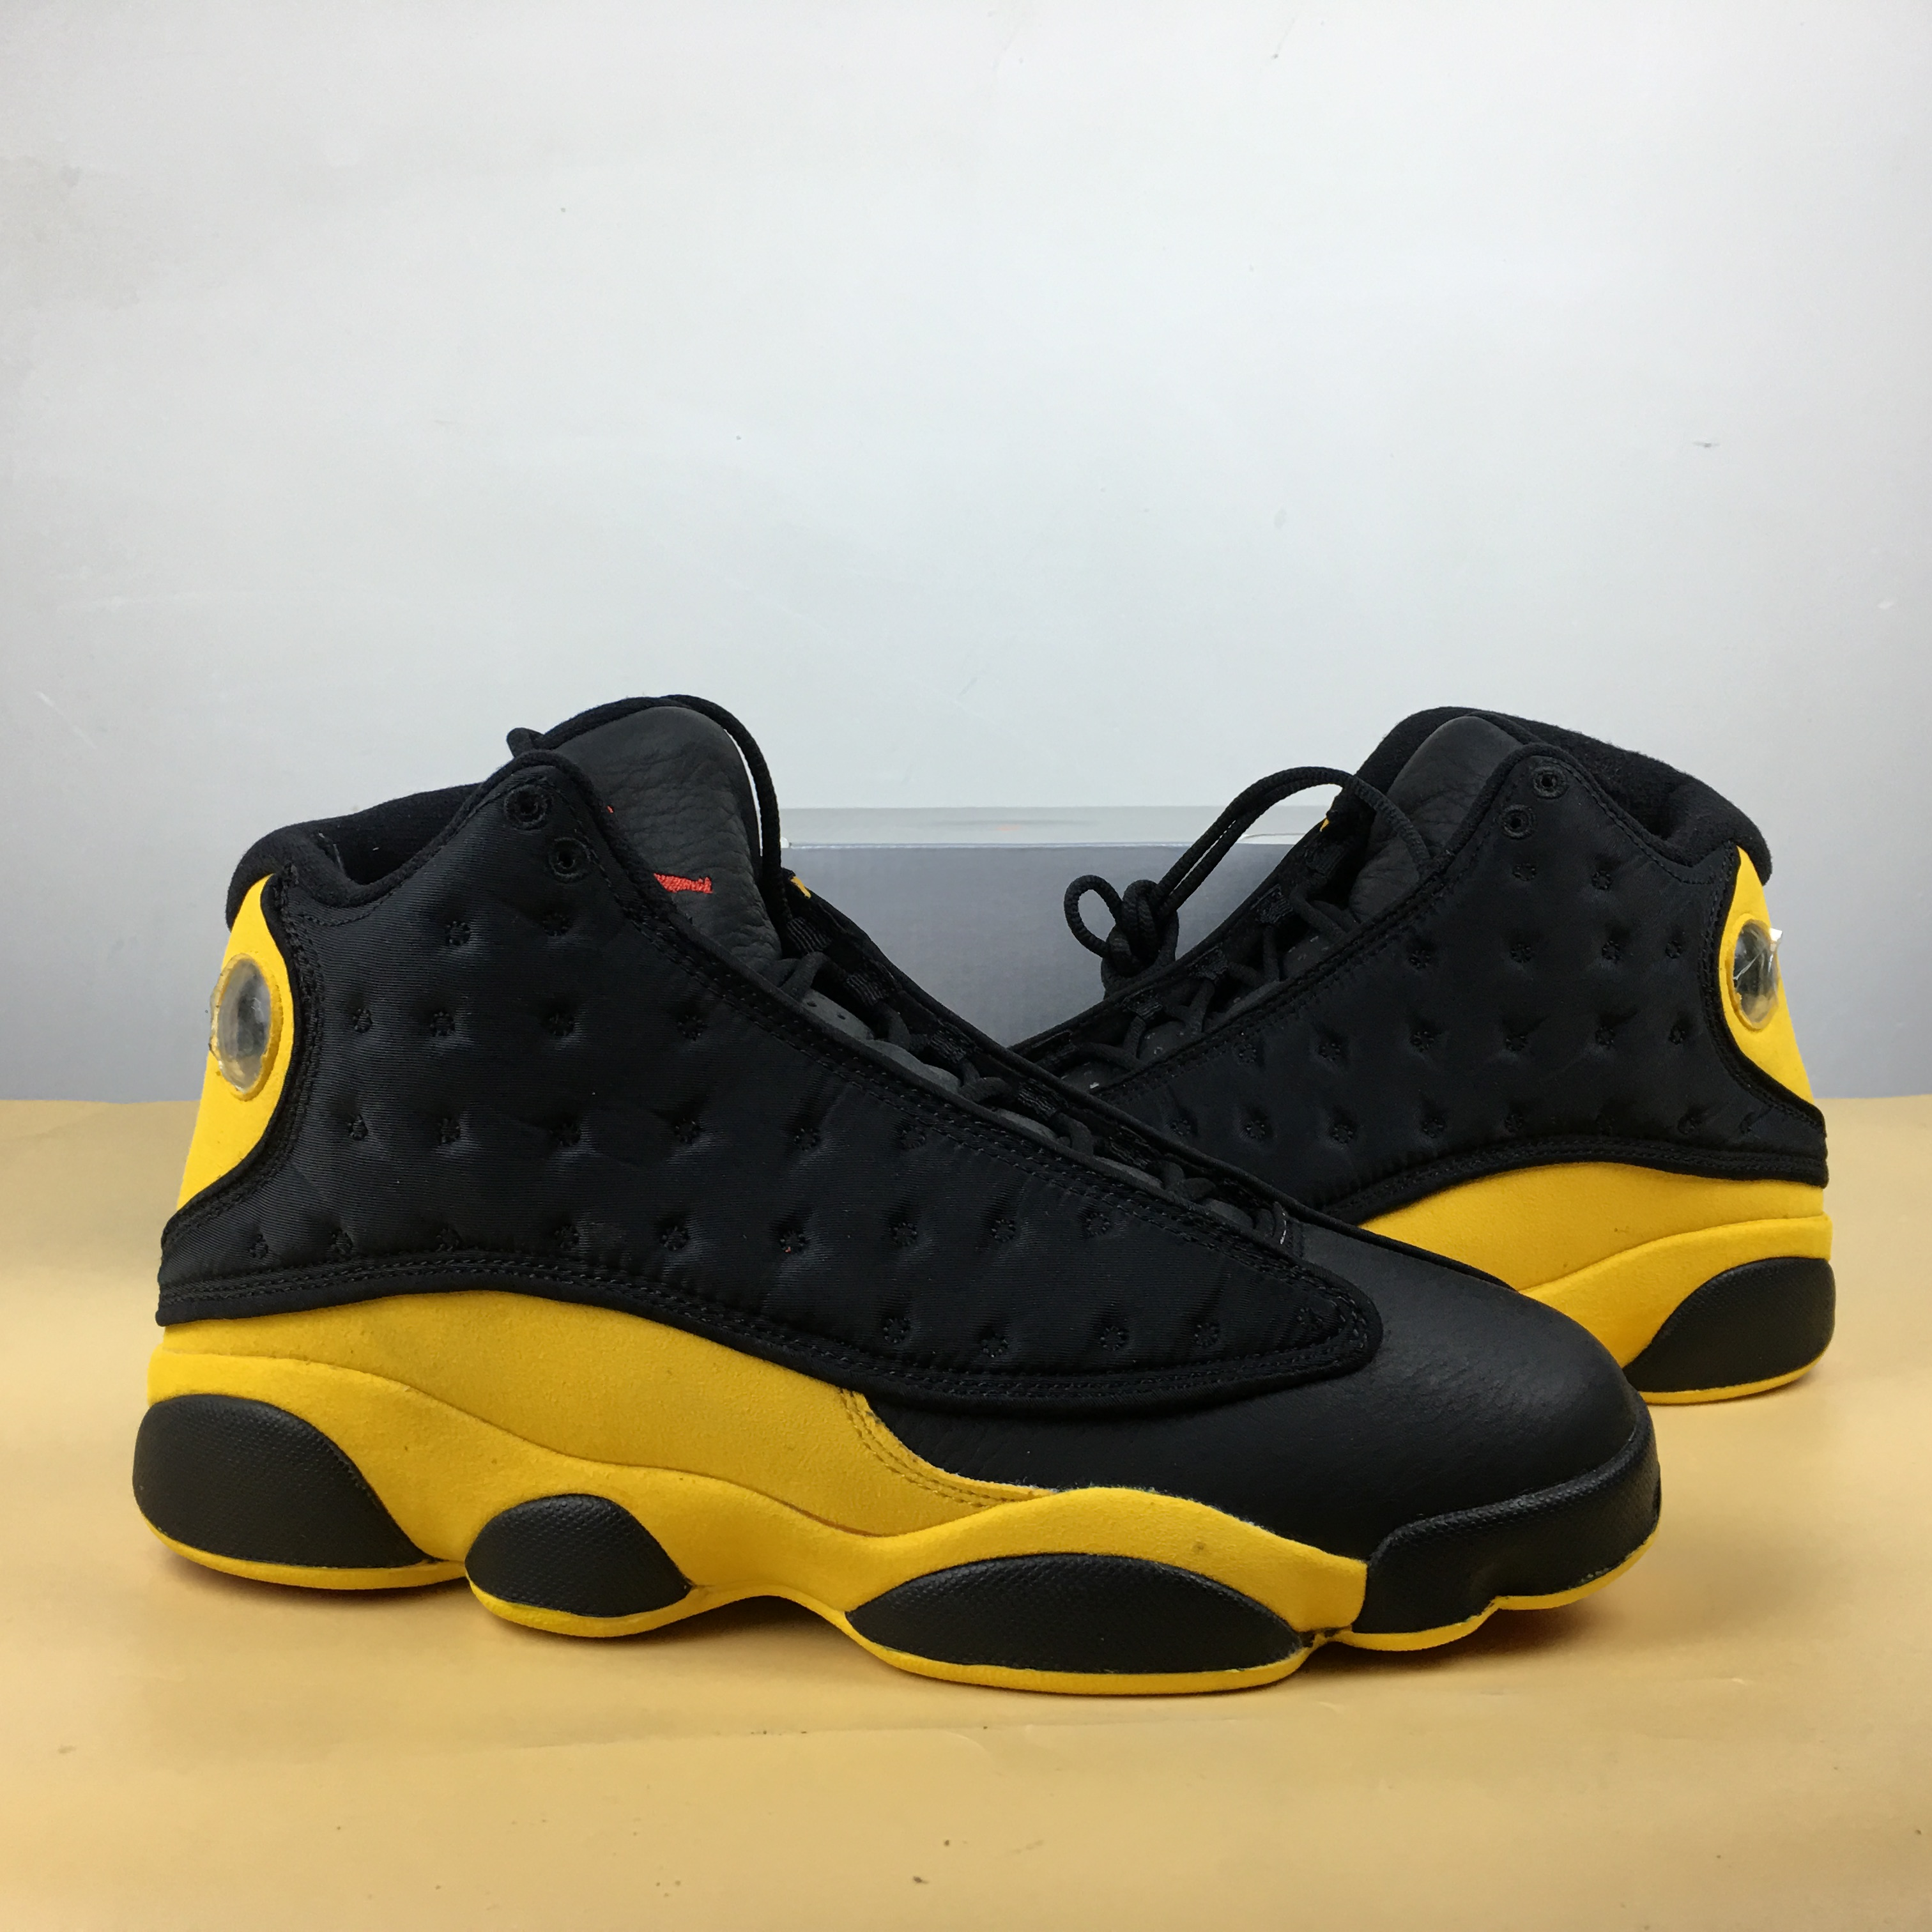 7d9bb050bf89b7 New Air Jordan 13 Melo Class of 2003 Shoes  18women92107  -  93.00 ...